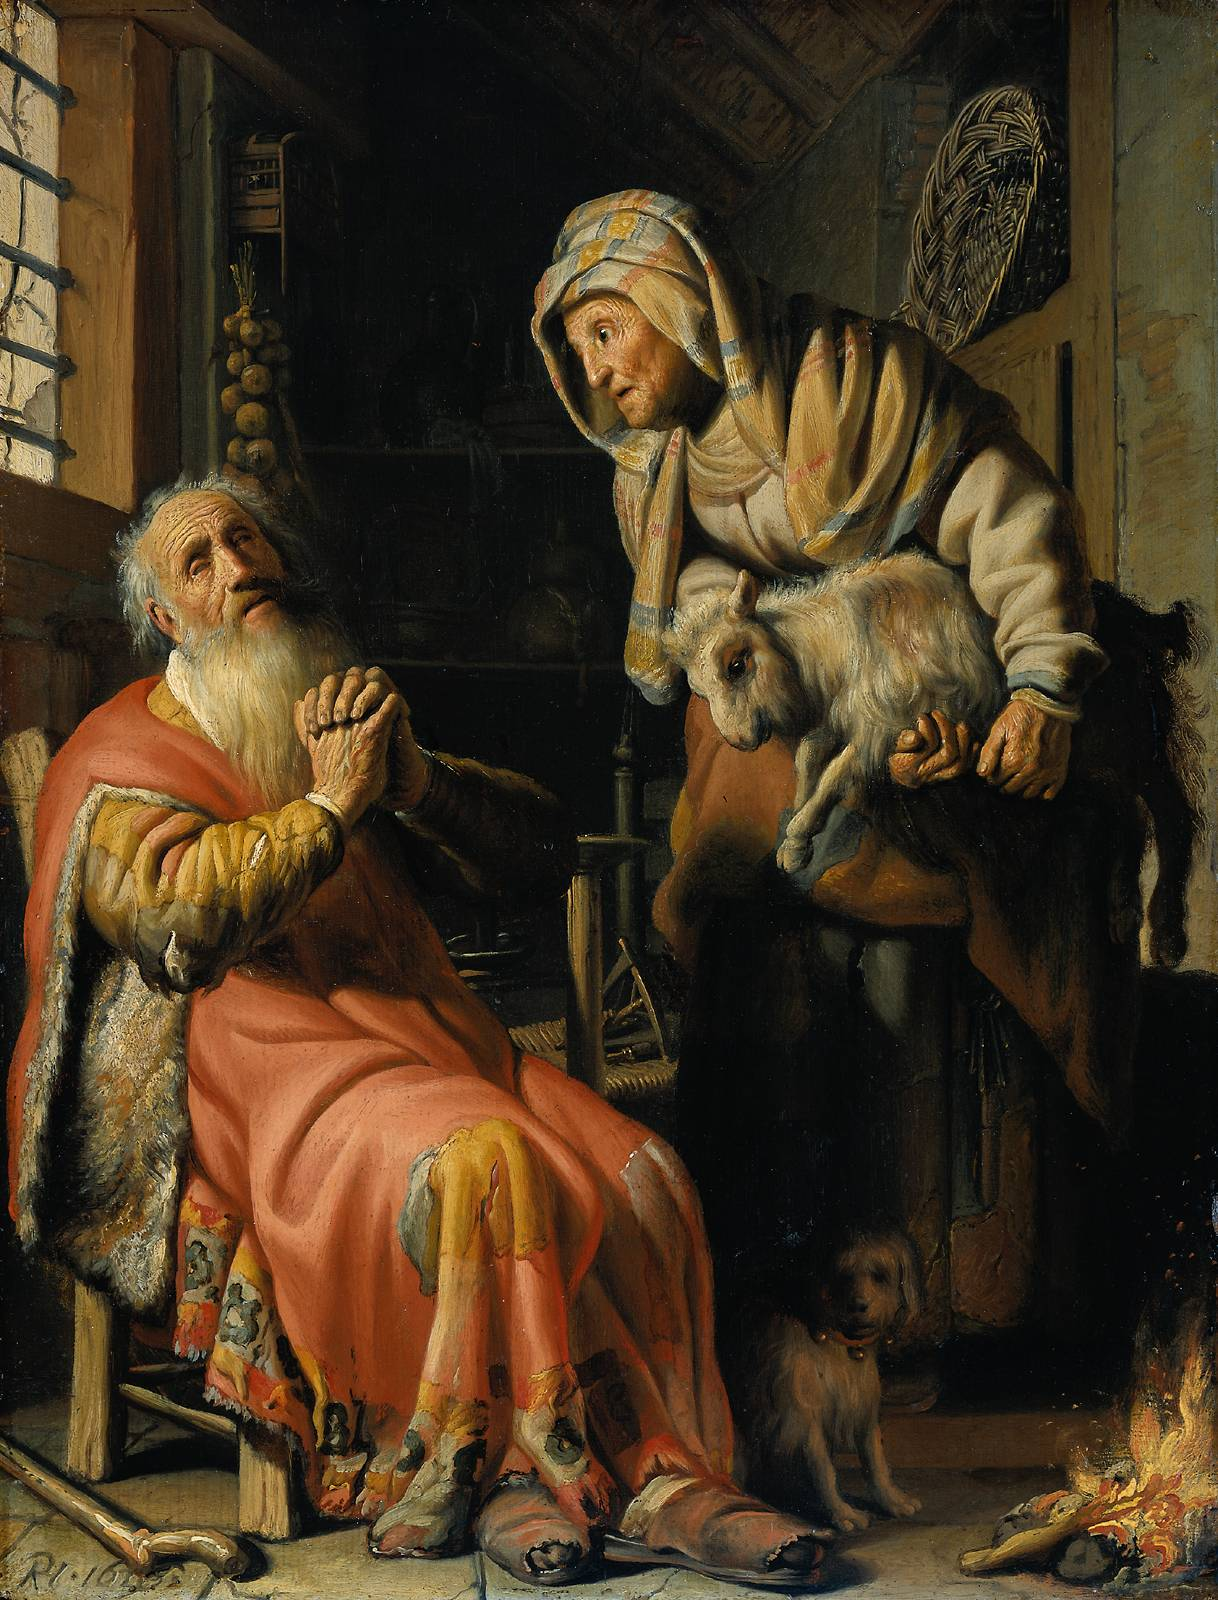 Knibbe-Rembrandt